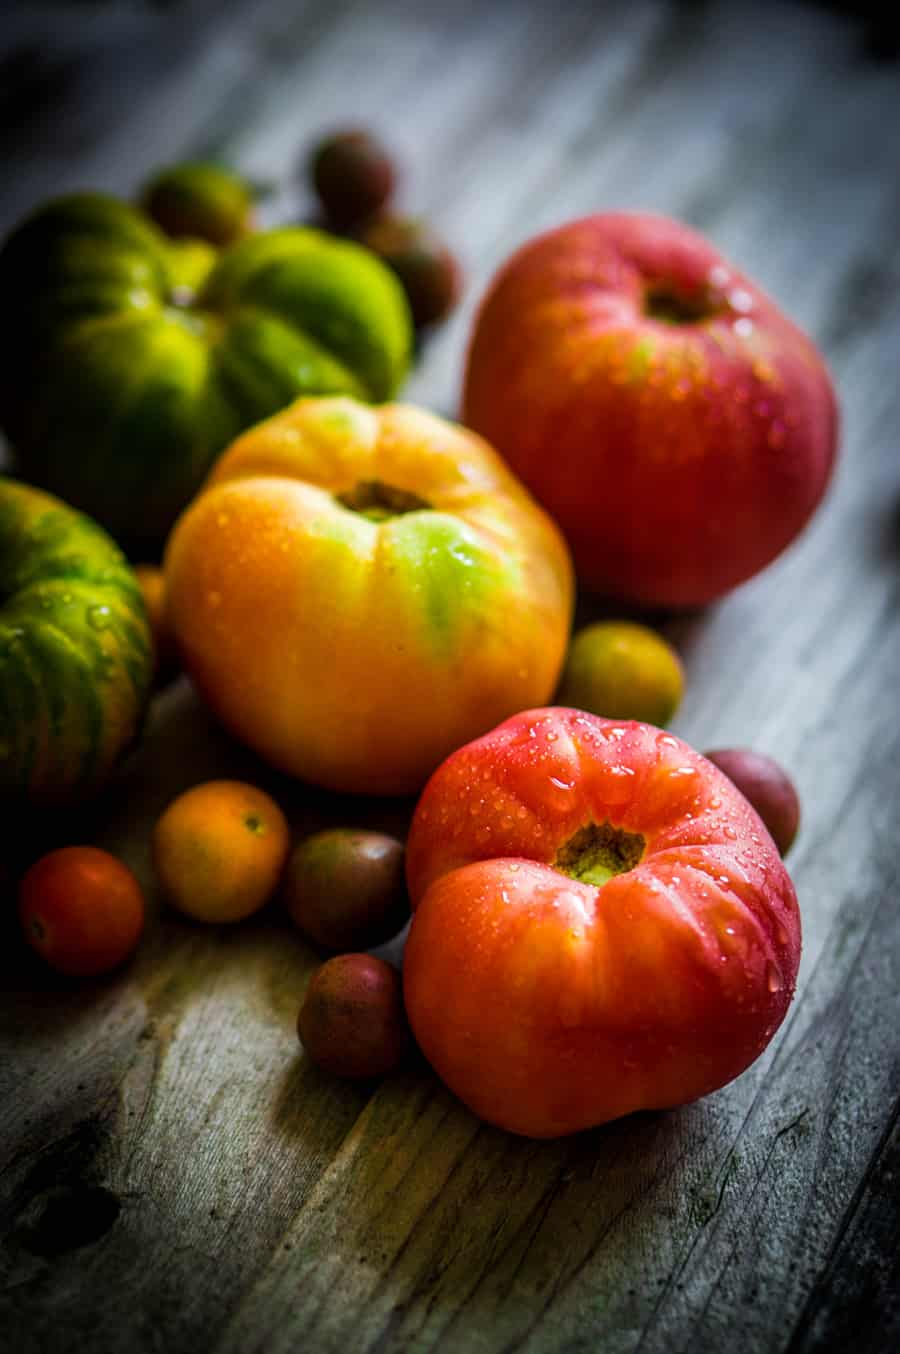 heirloom tomatoes on wooden surface